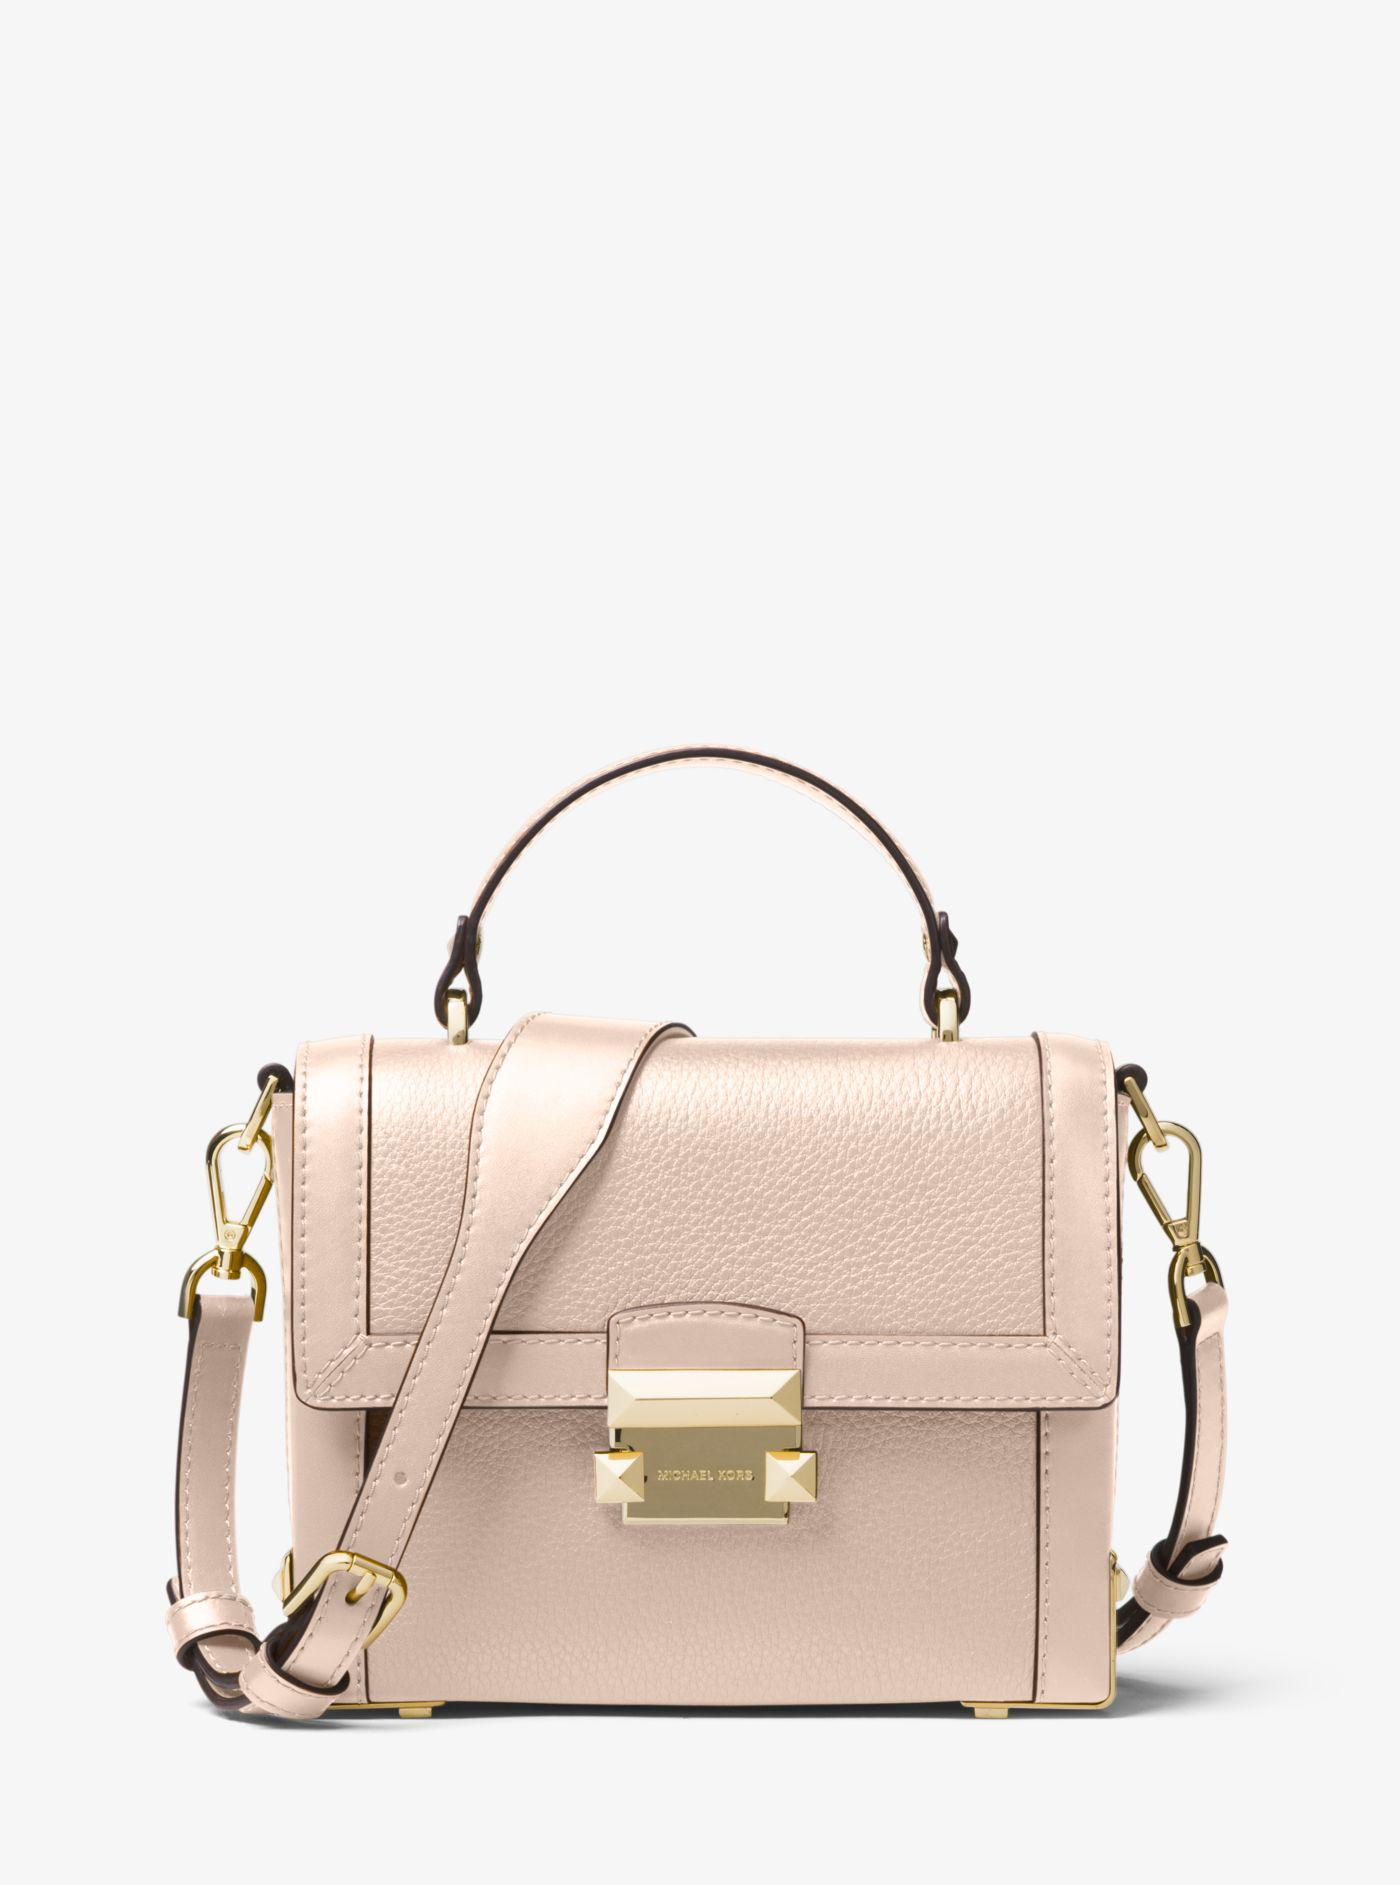 df9b23fa9bdc Lyst - Michael Kors Jayne Small Pebbled Leather Trunk Bag in Pink